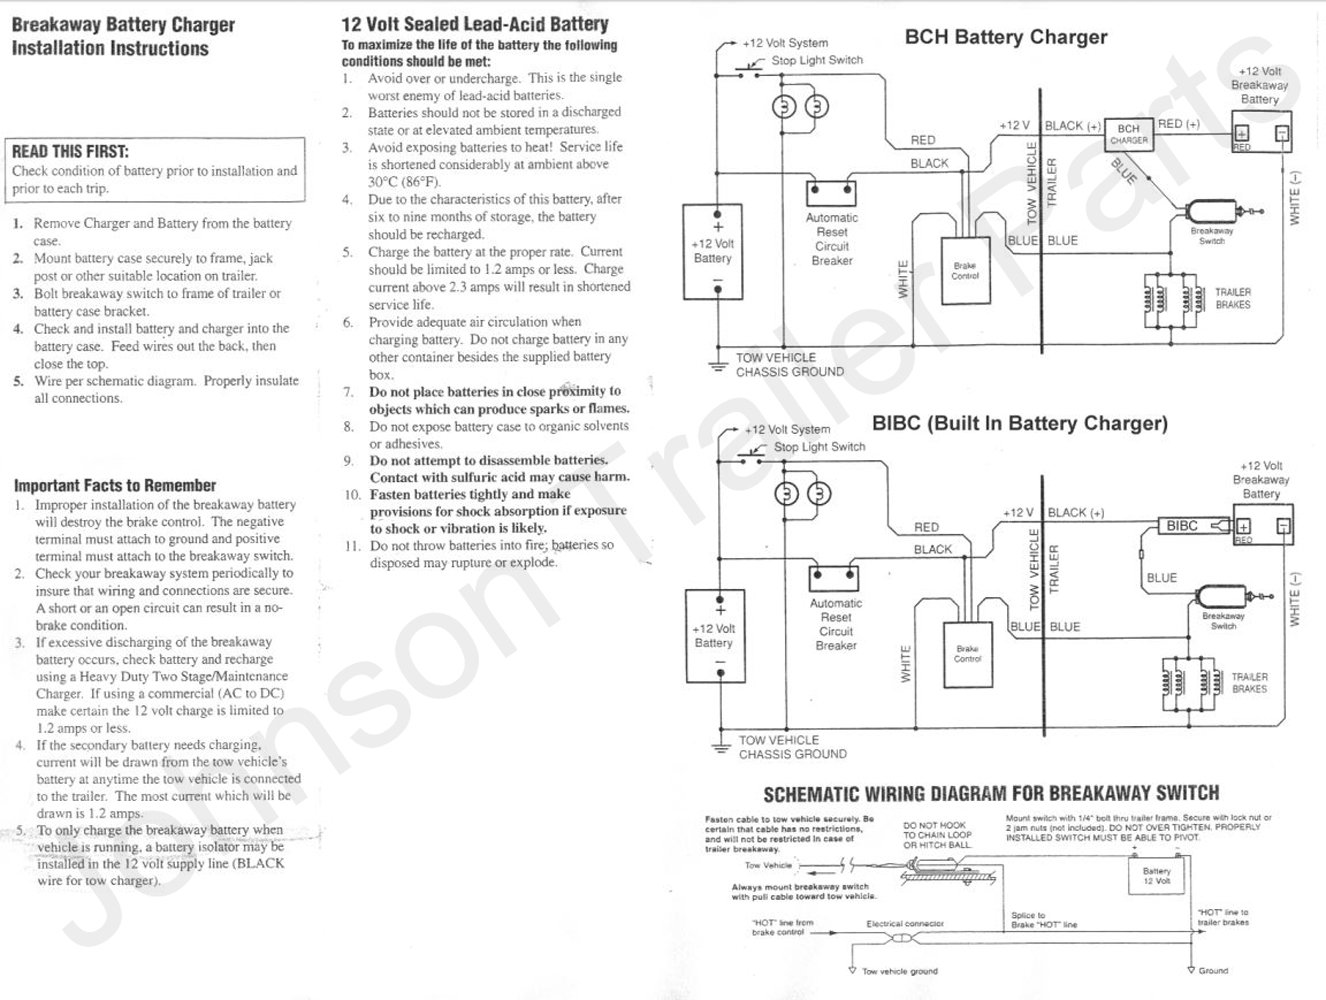 718PvzZr5ZL._SL1326_ amazon com trailer breakaway kit led readout breakaway switch trailer breakaway kit wiring diagram at soozxer.org